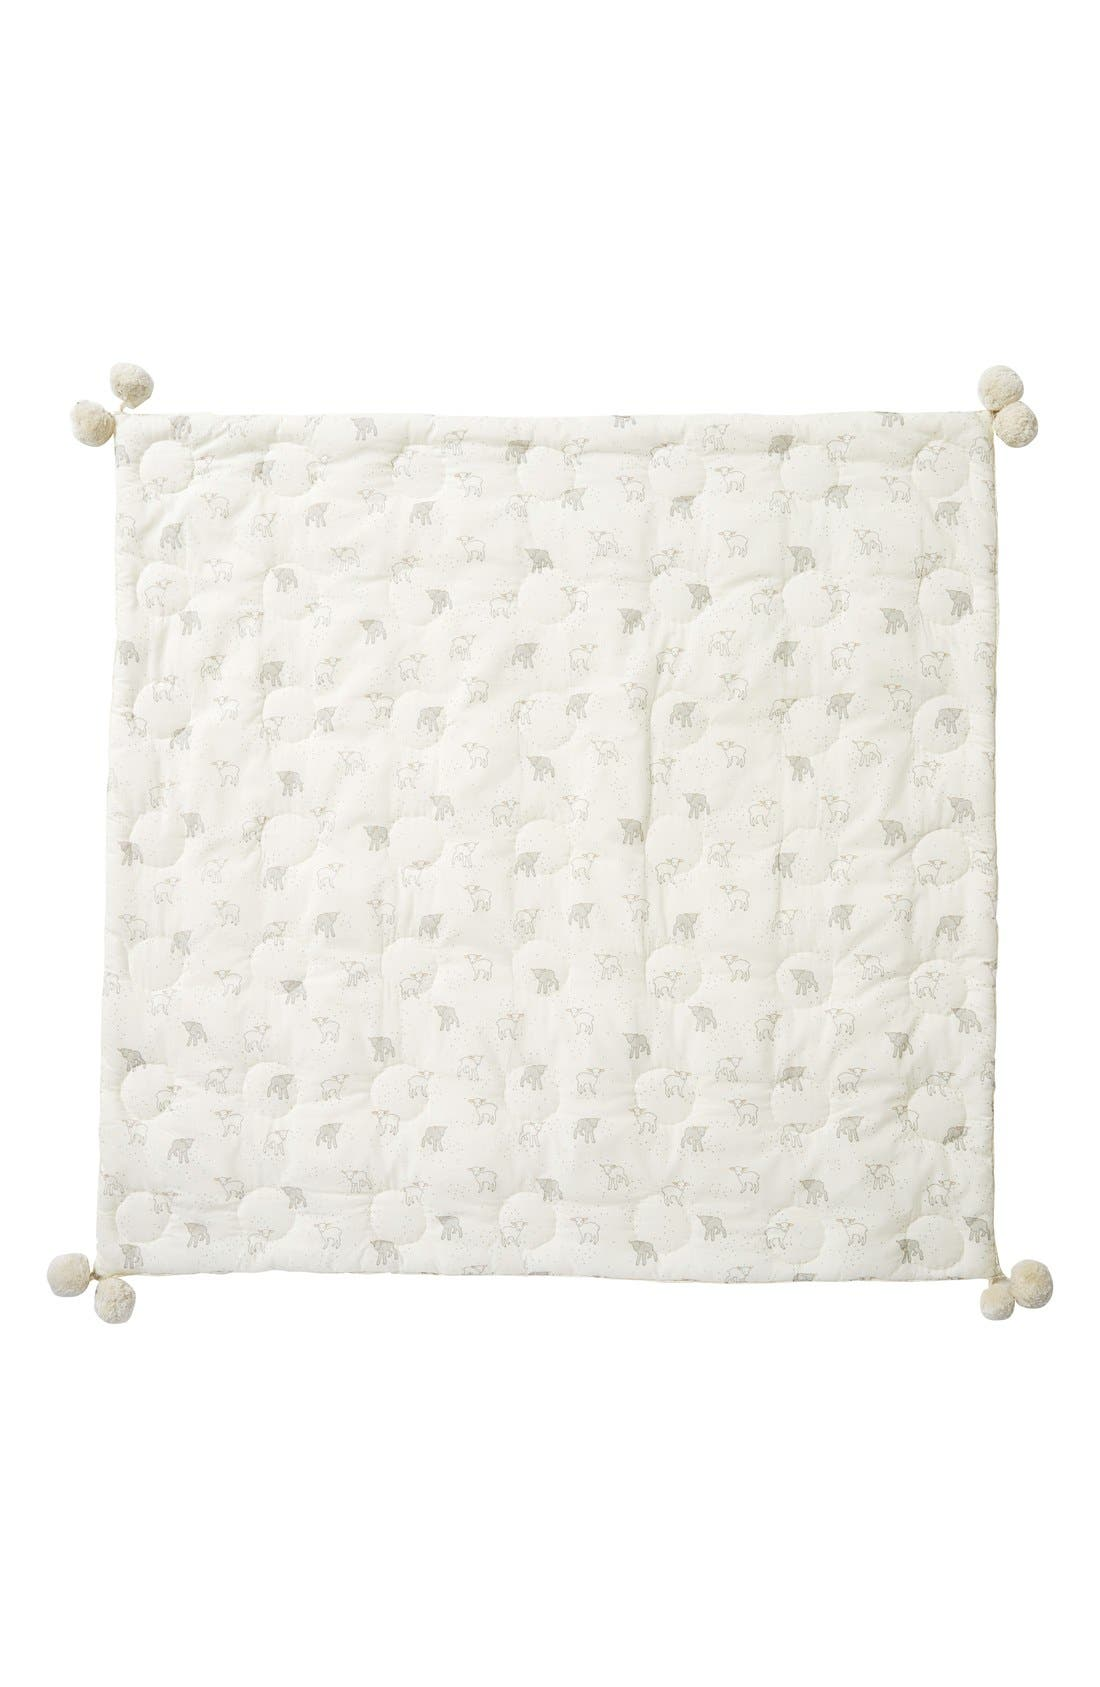 Main Image - Petit Pehr 'Little Lamb' Baby Blanket